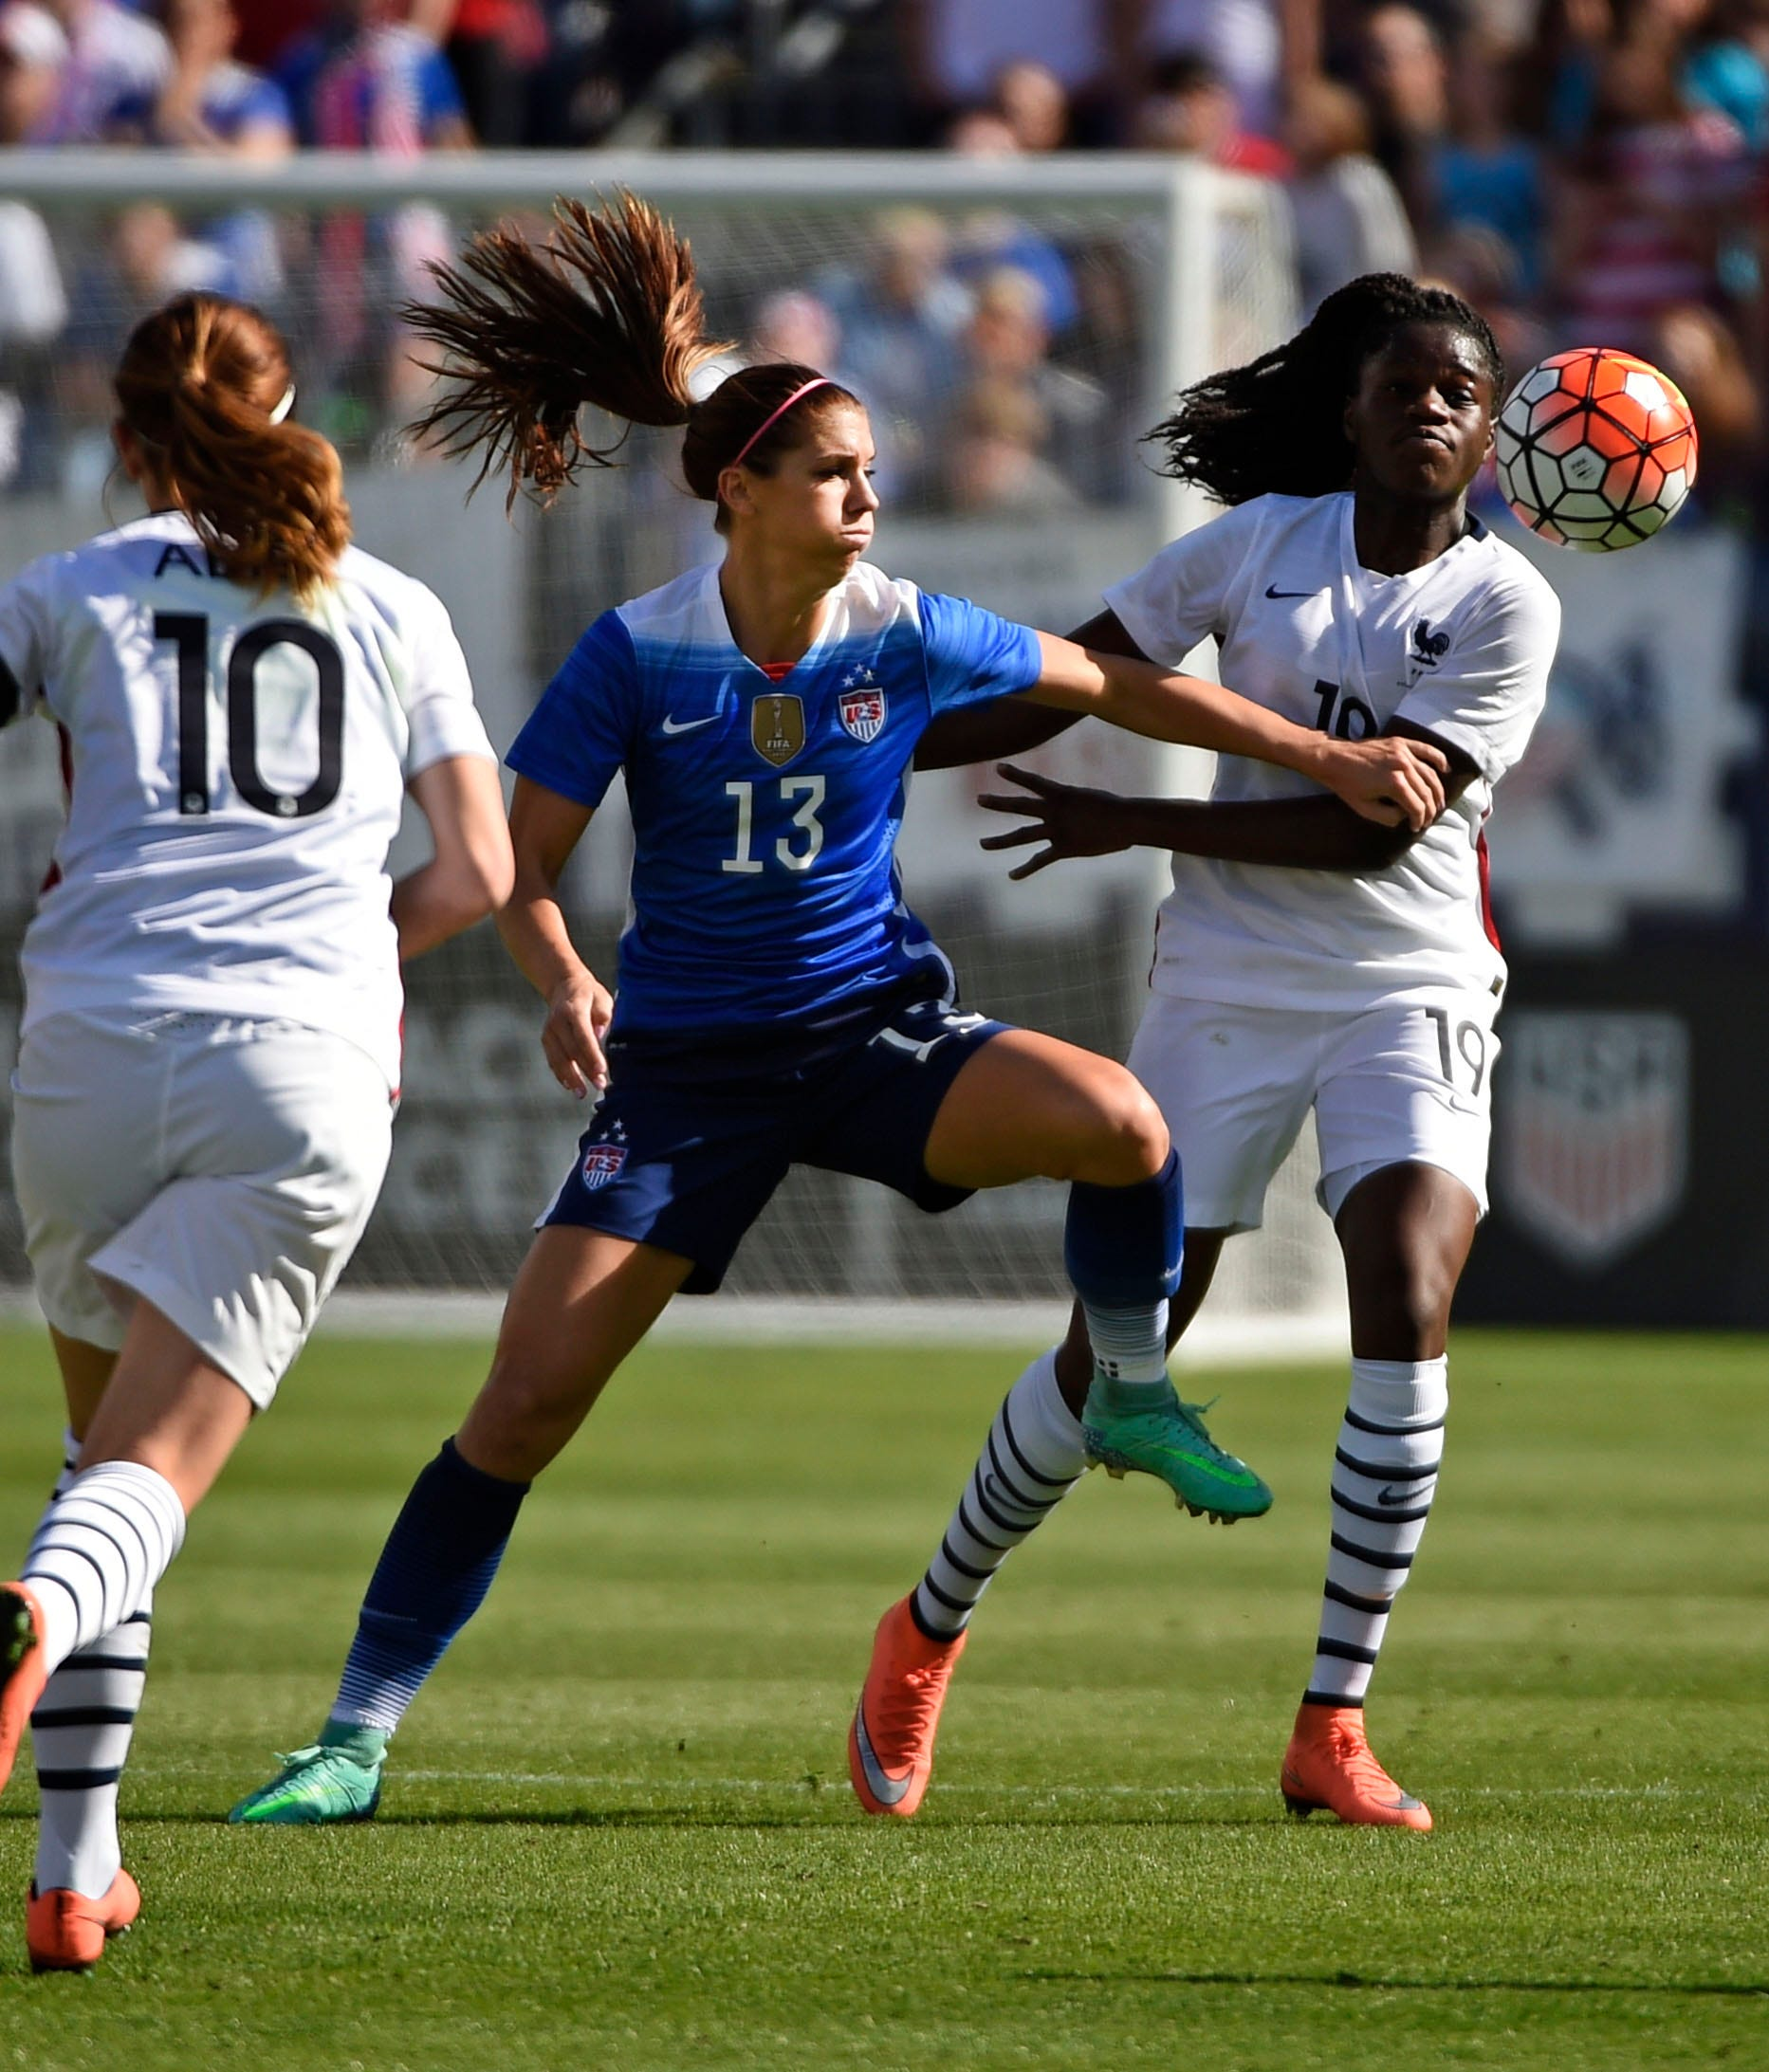 USA's Alex Morgan, 13, goes after the ball against